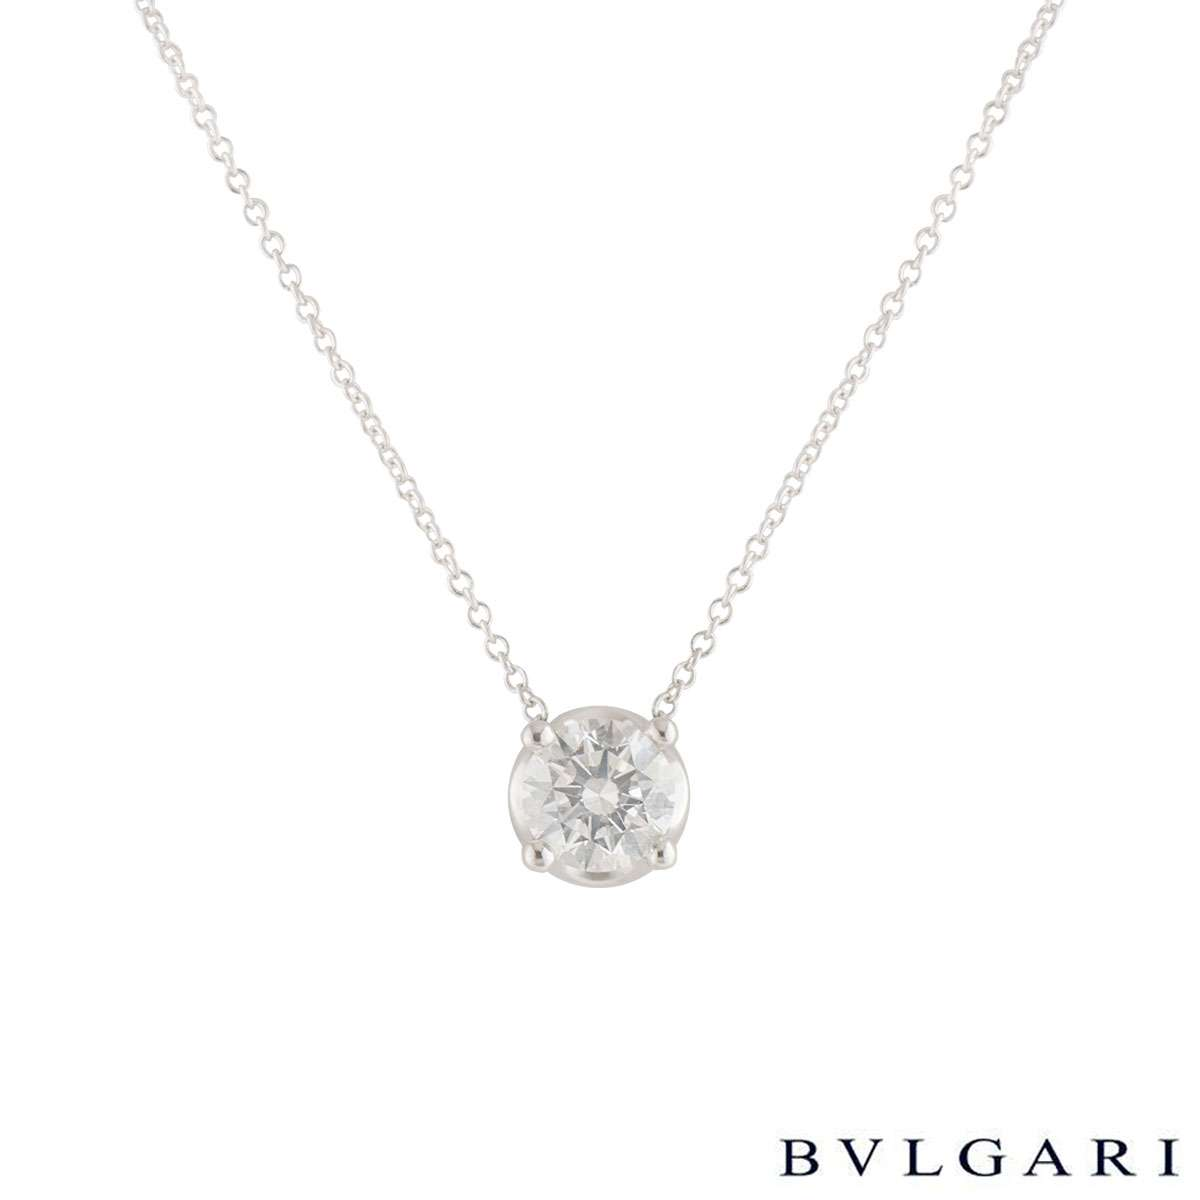 Bvlgari White Gold Diamond Corona Necklace 1.02ct H/IF